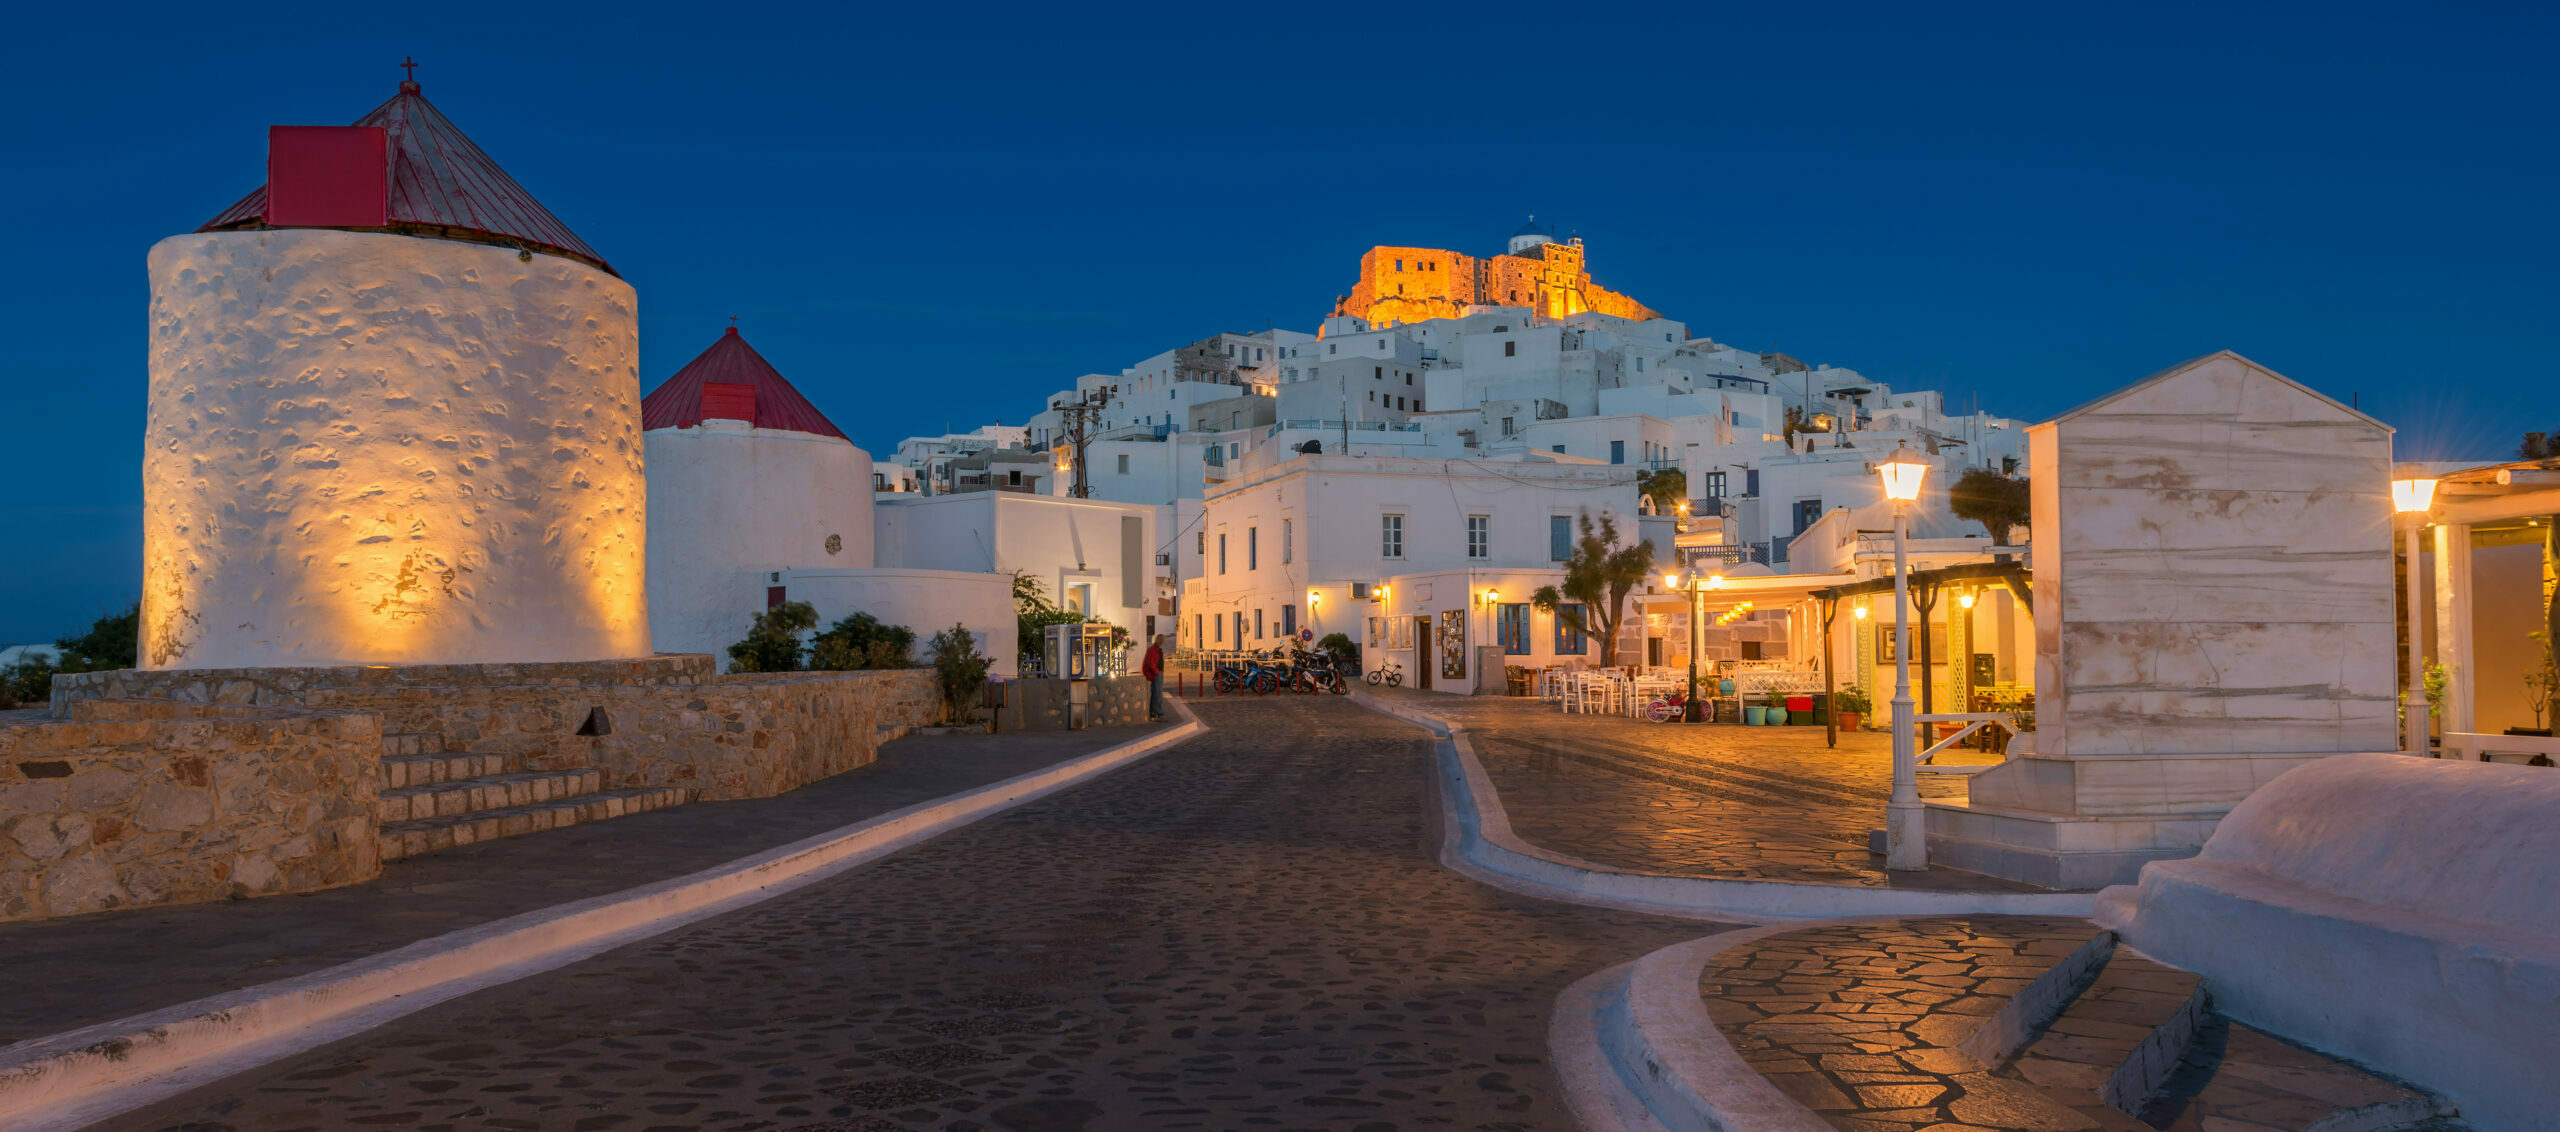 Astypalaia: Four must-sees